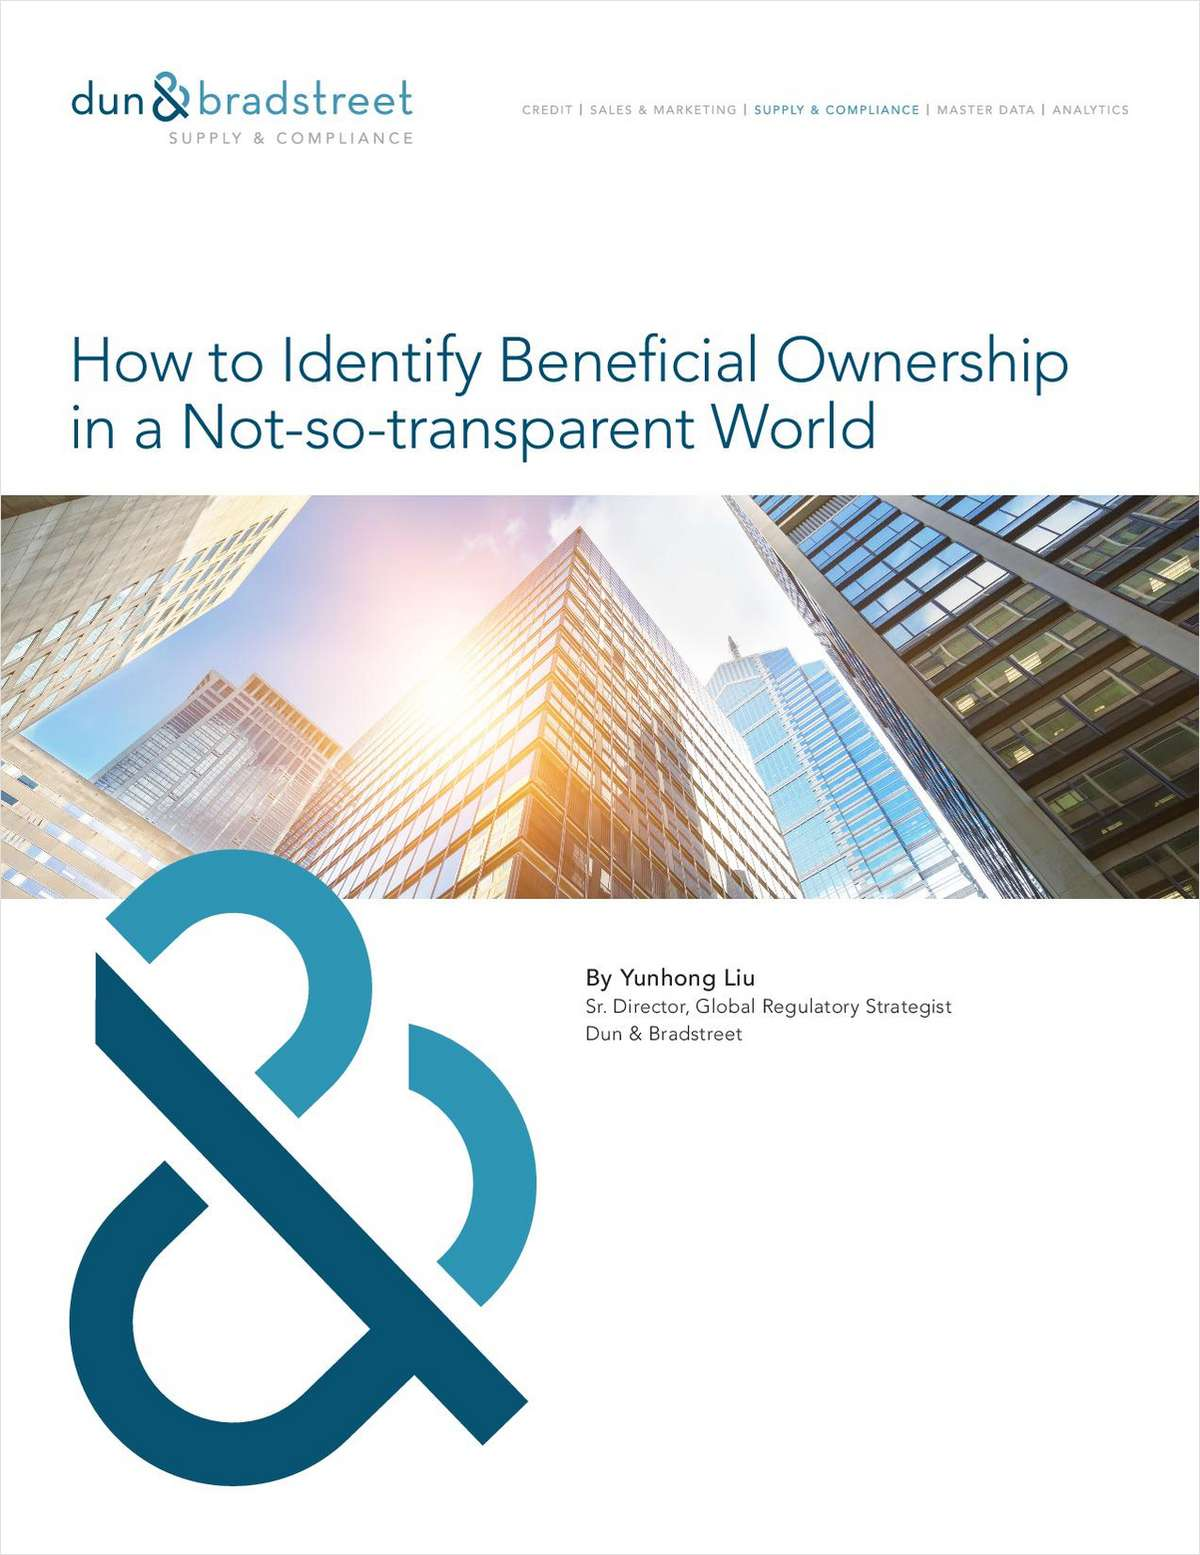 Identify Beneficial Ownership in a Not-so-transparent World